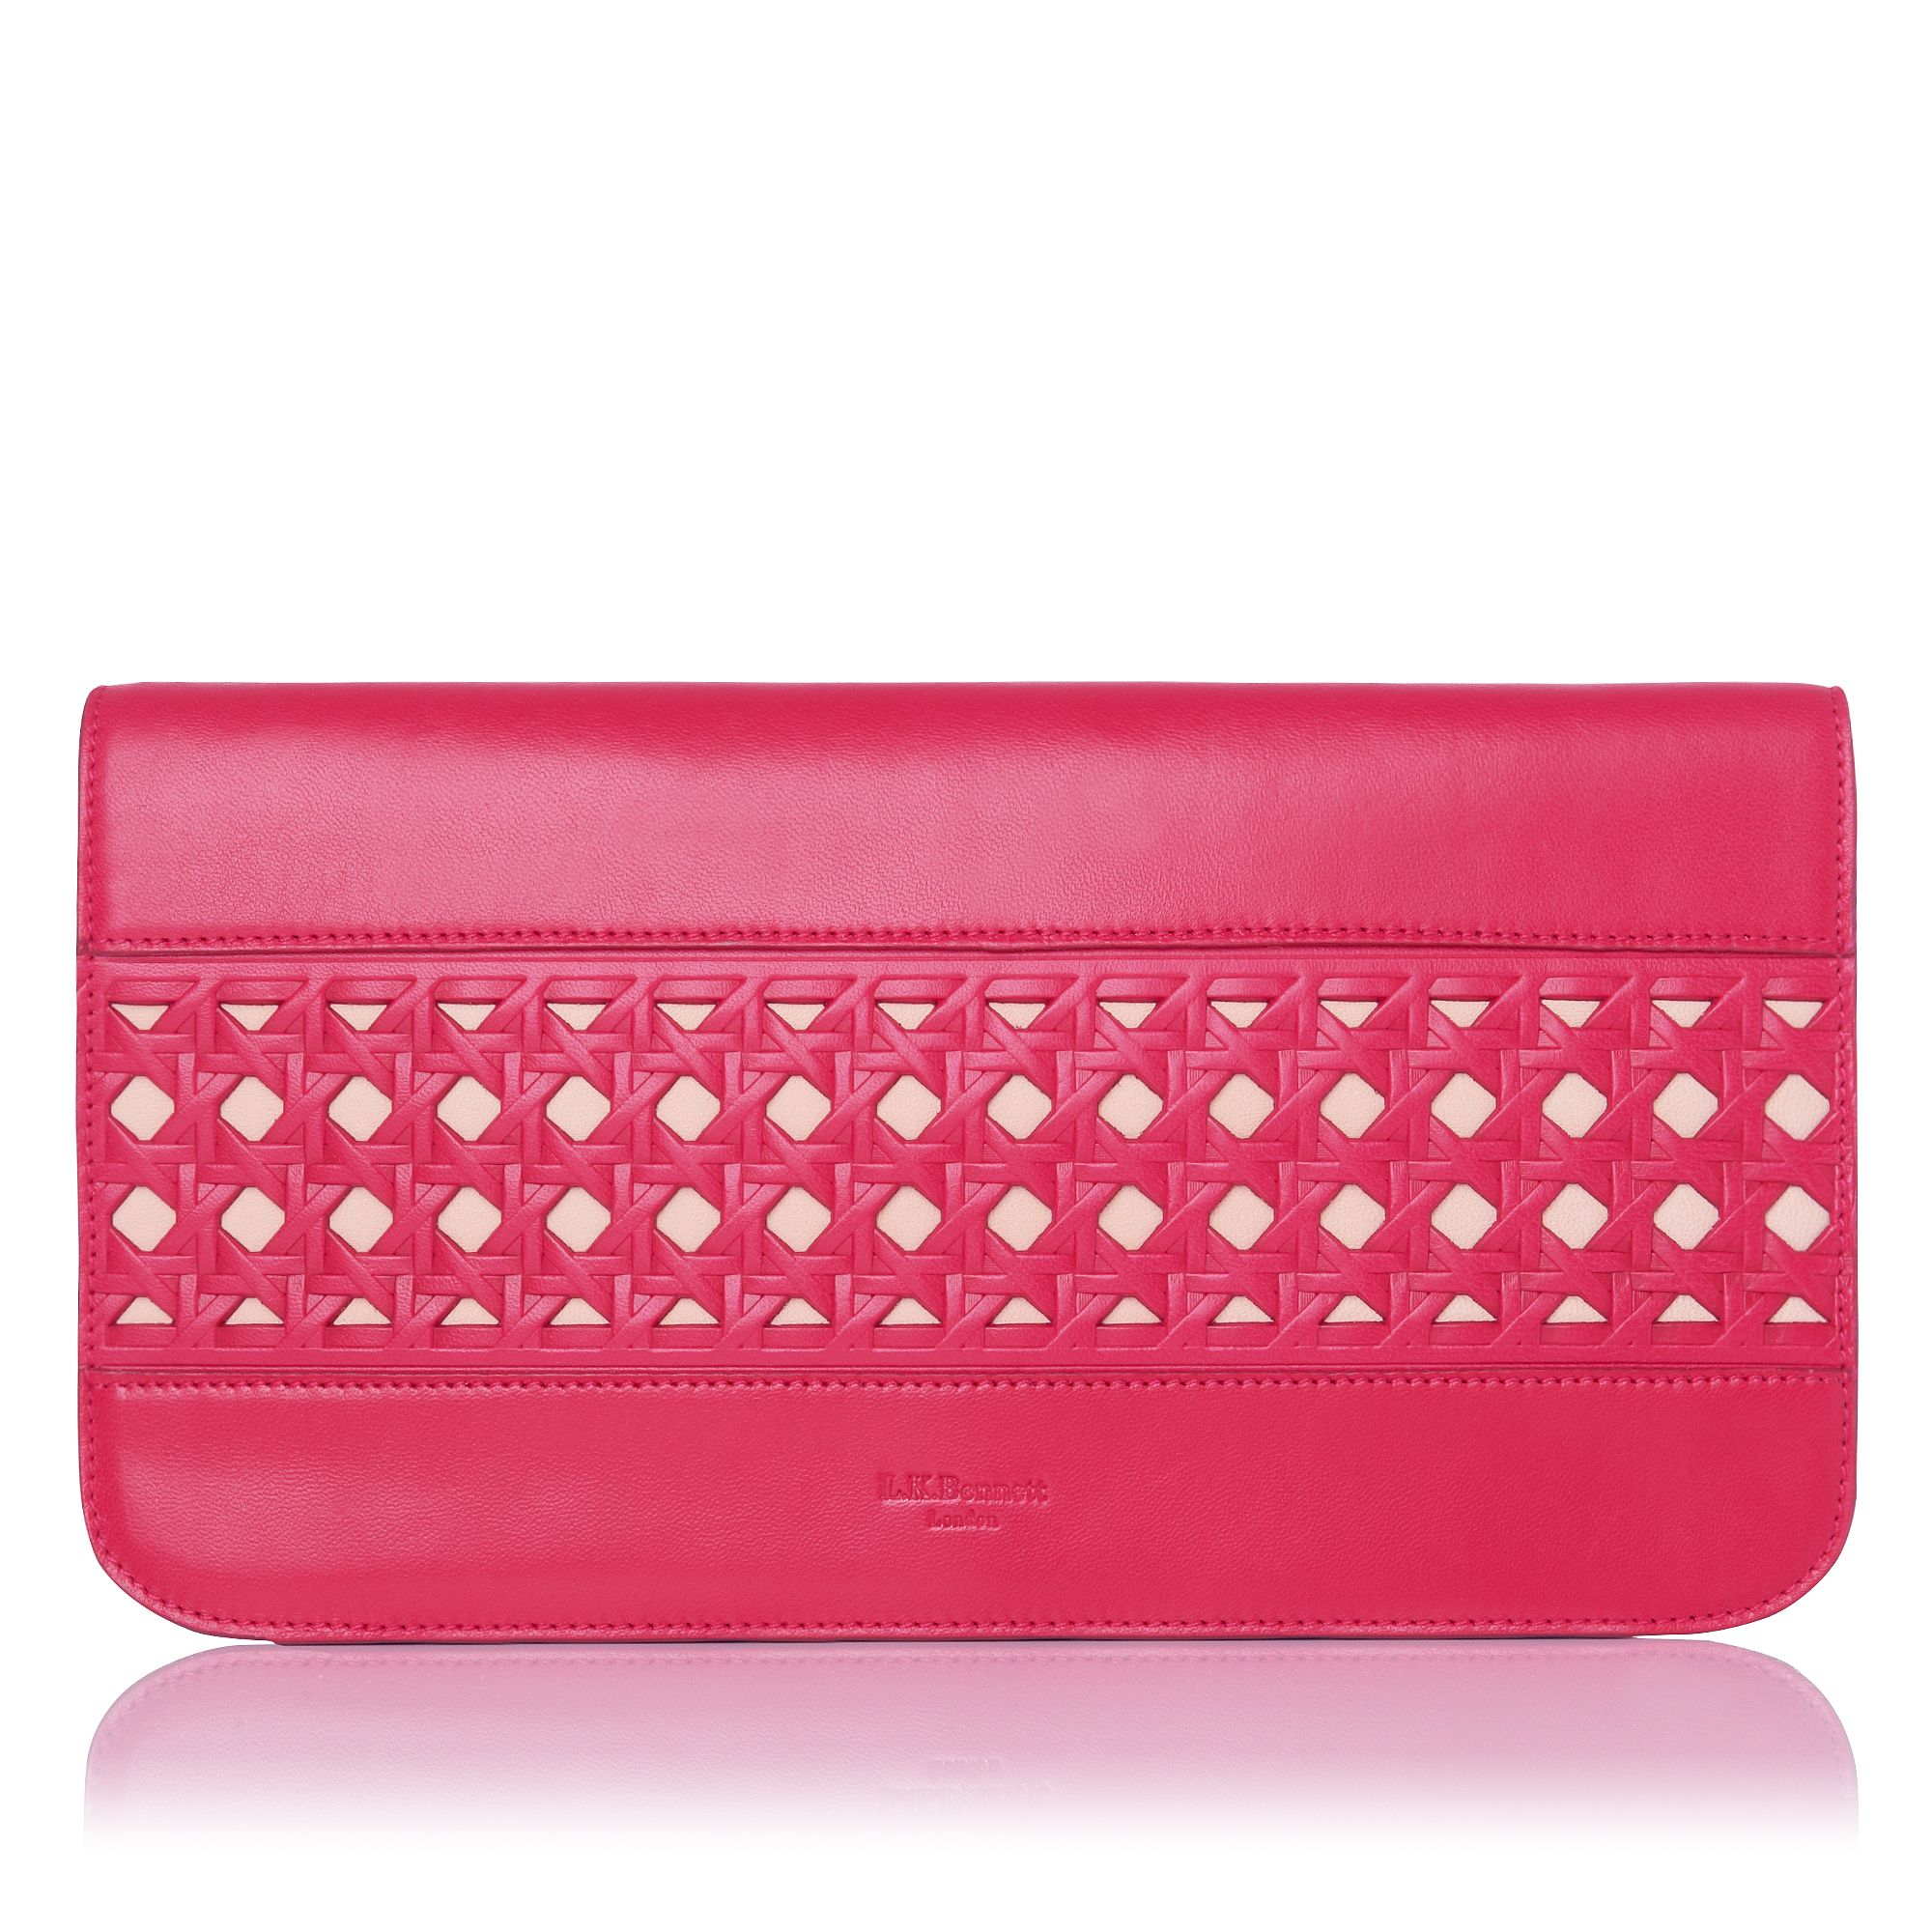 Willa clutch bag